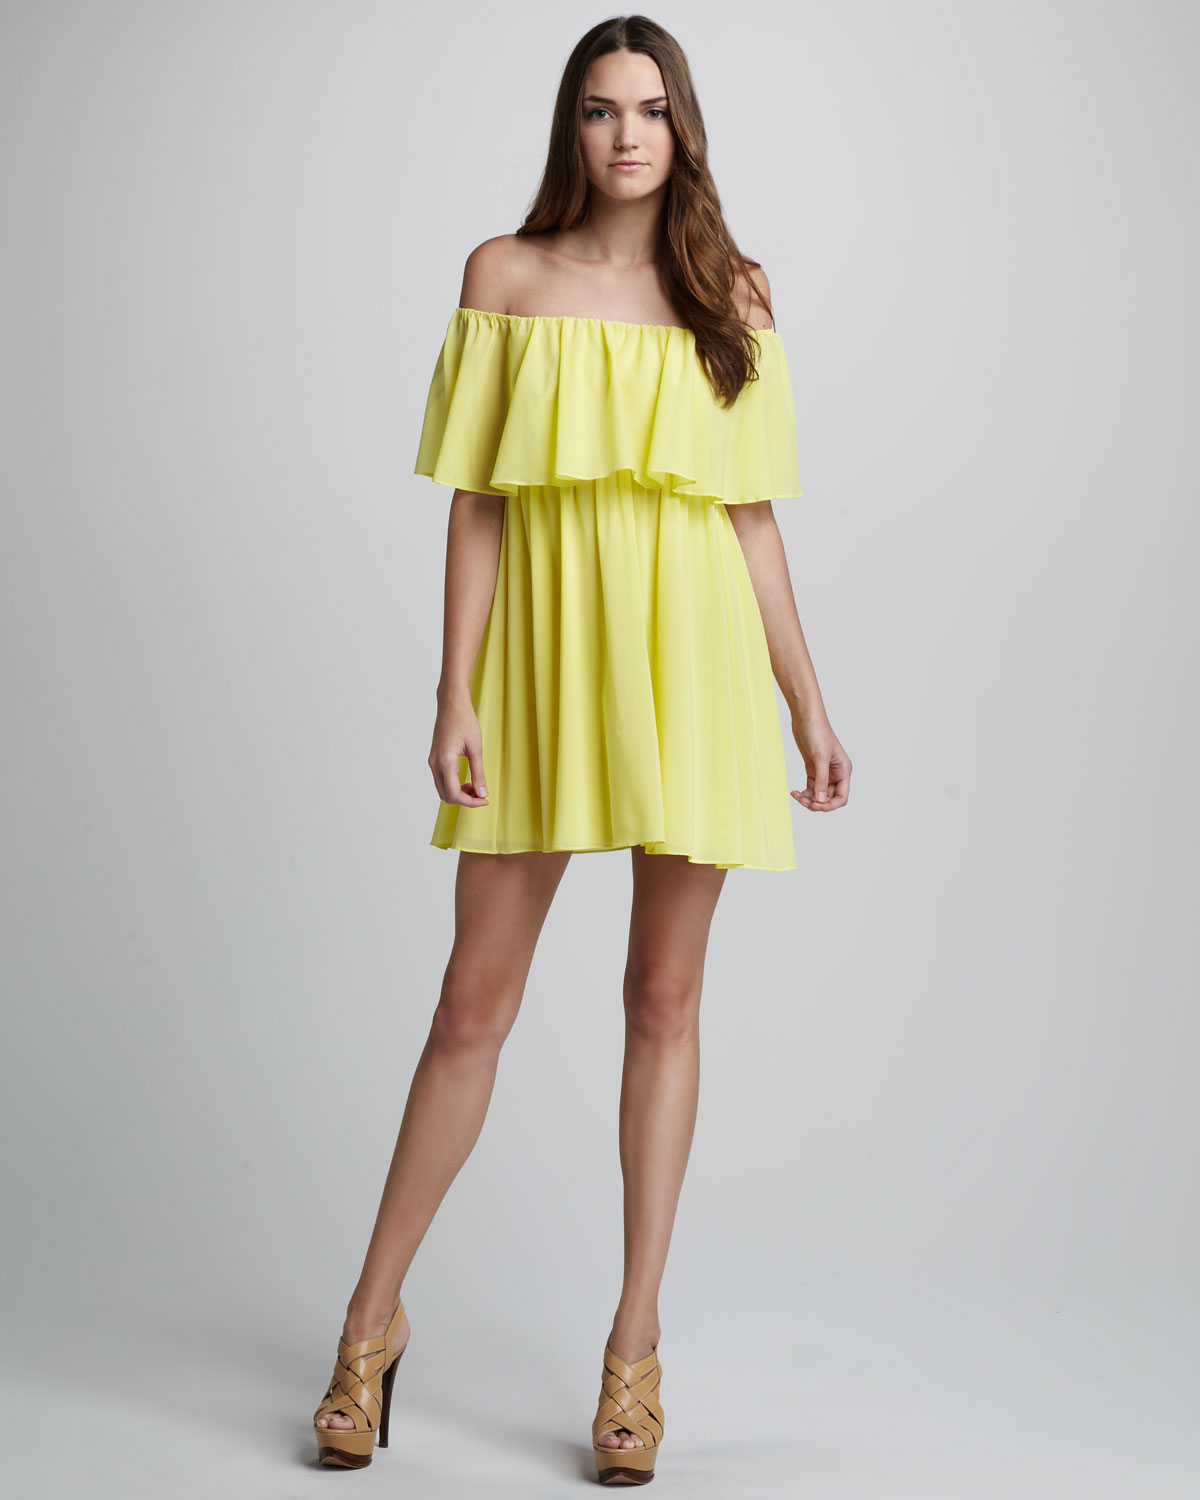 Alice + olivia Shari Off The Shoulder Dress in Yellow | Lyst